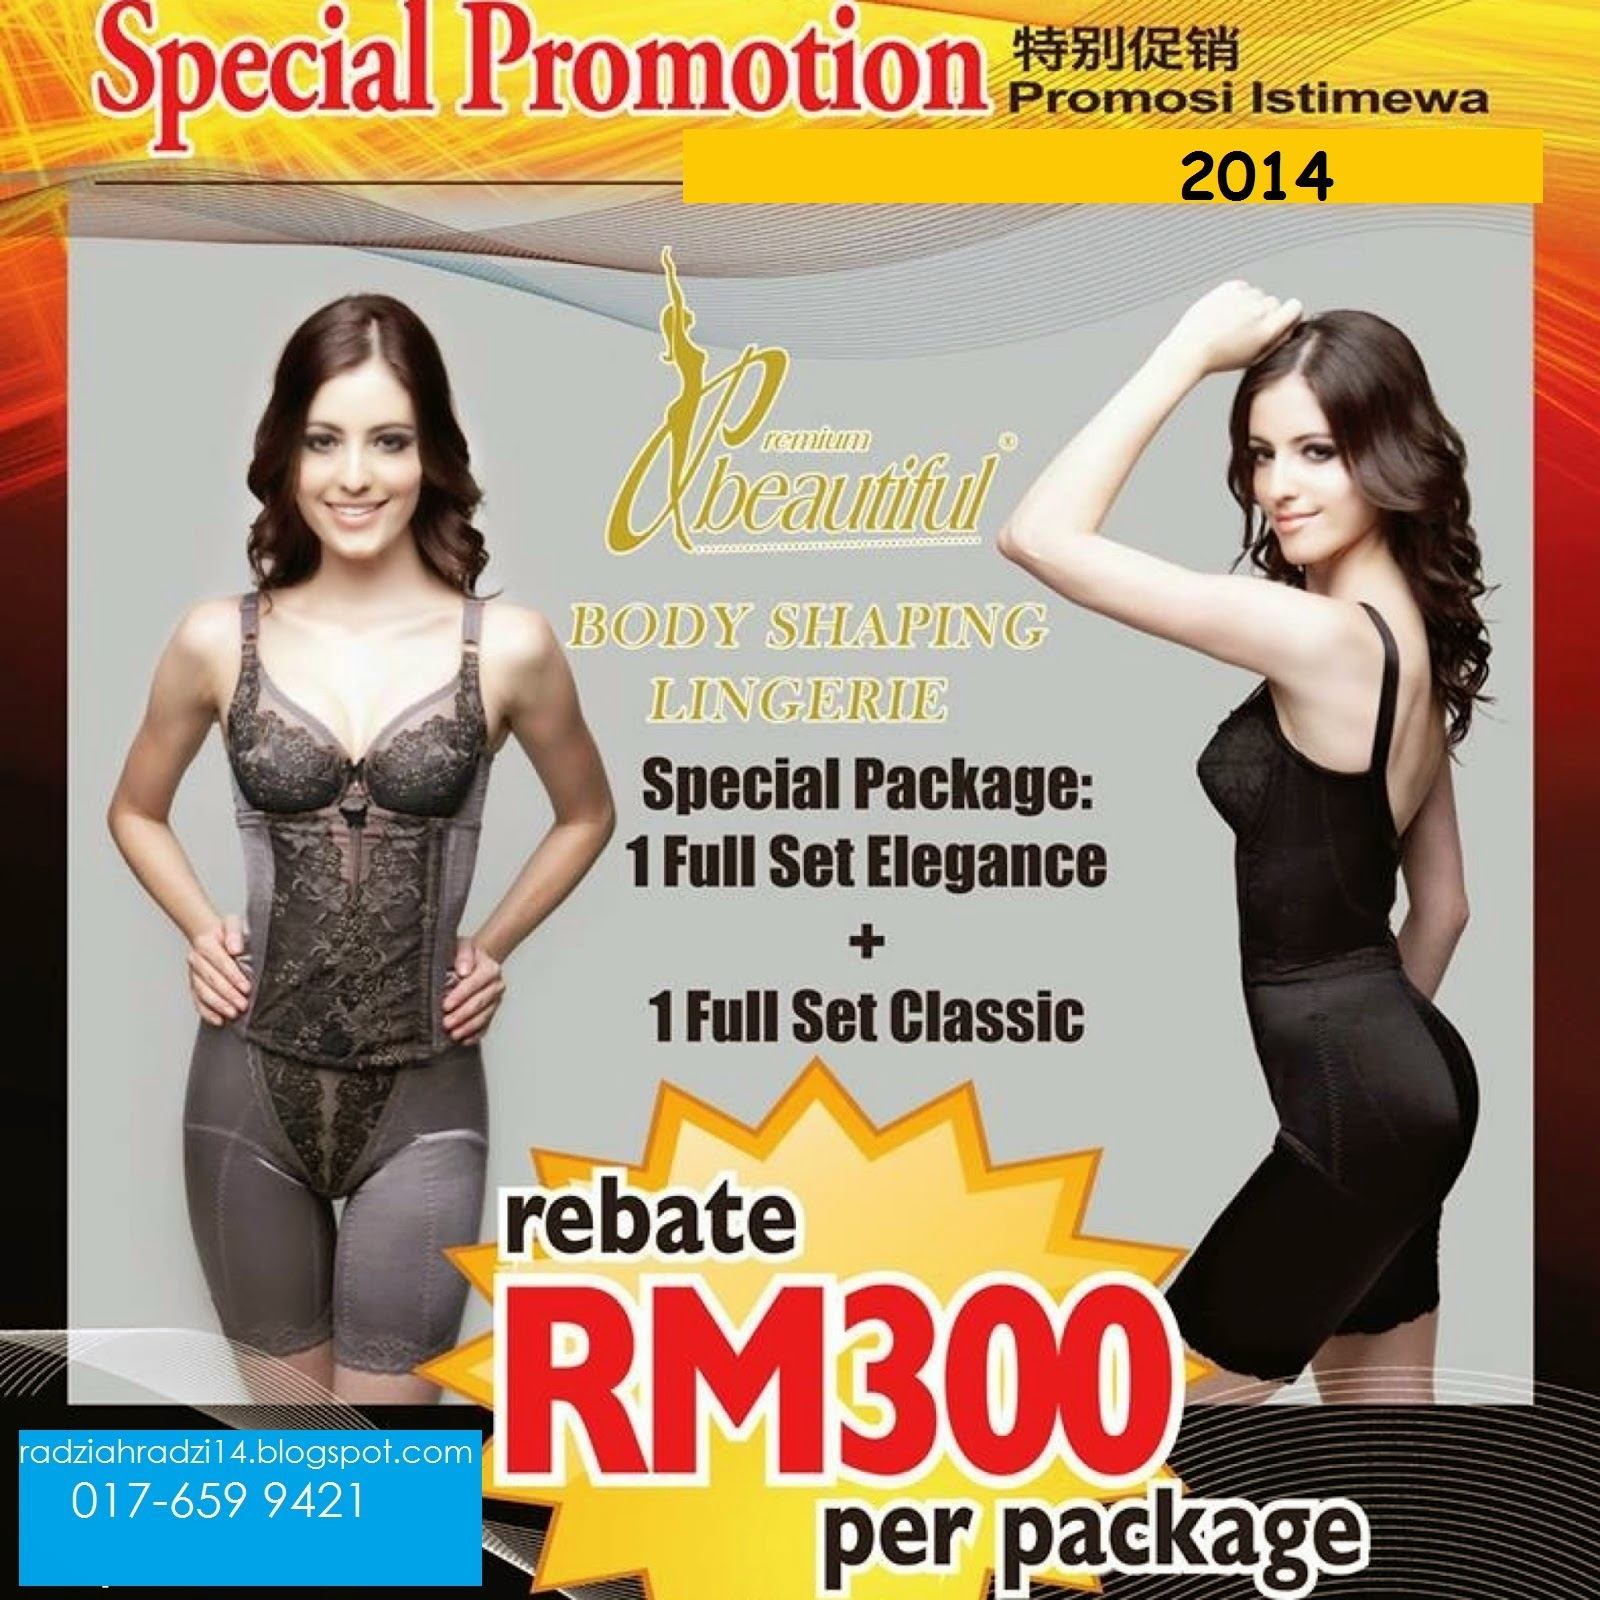 benefits, installment plan, premium beautiful, premium beautiful corset, premium beautiful elegance, promosi, slipped disc, sakit belakang,